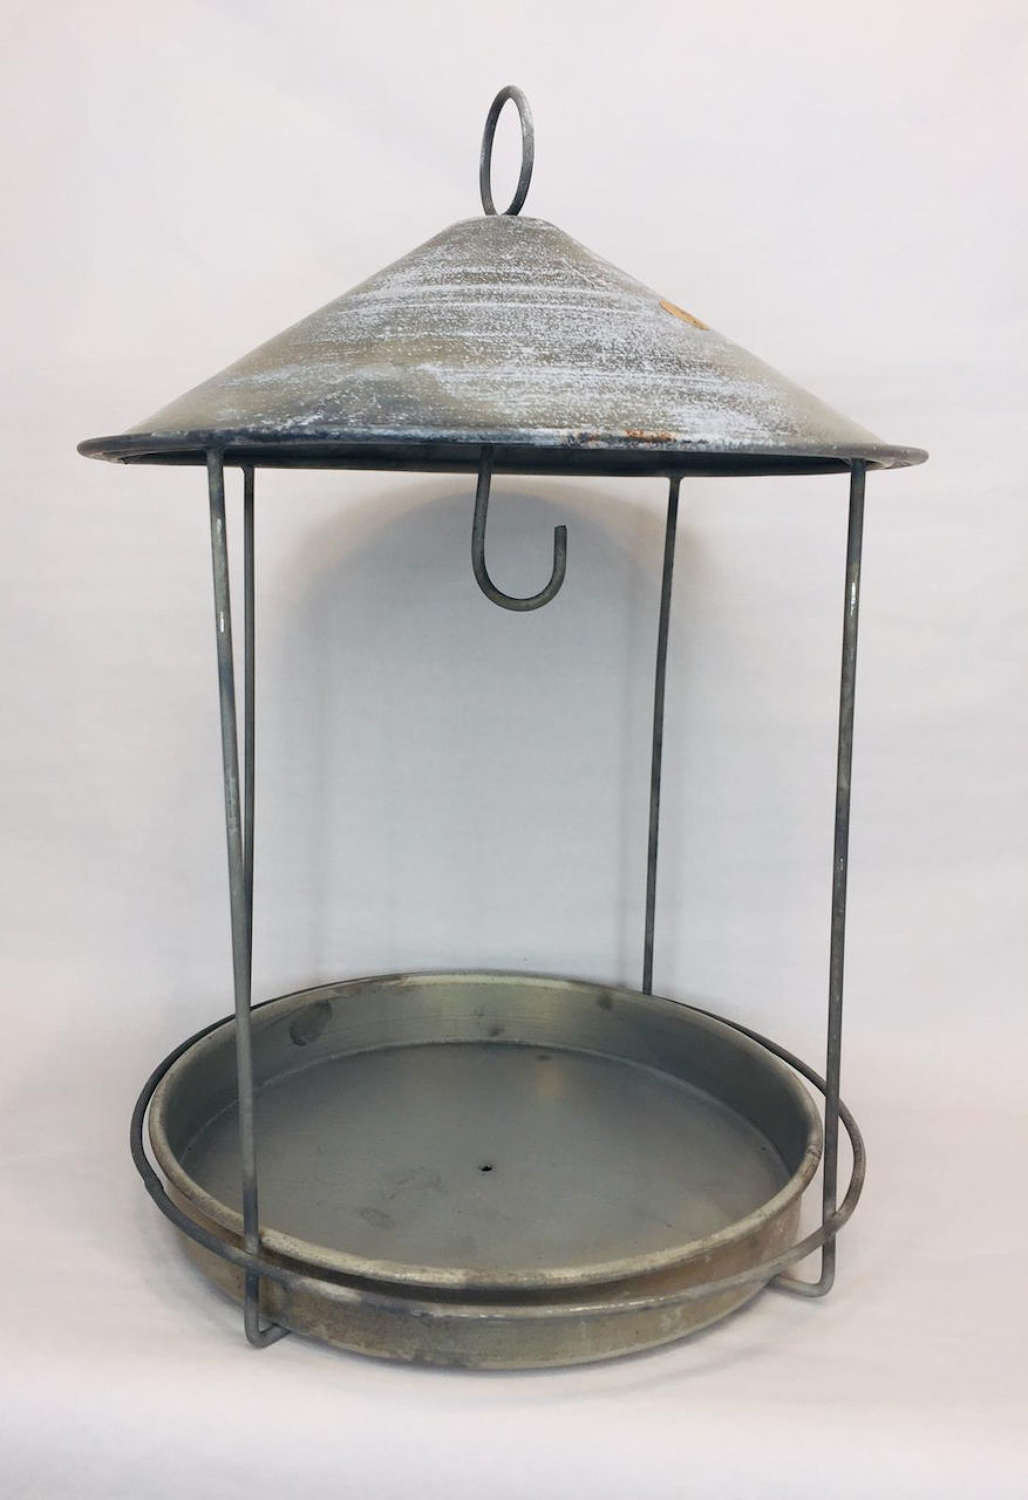 Rustic metal bird feeder